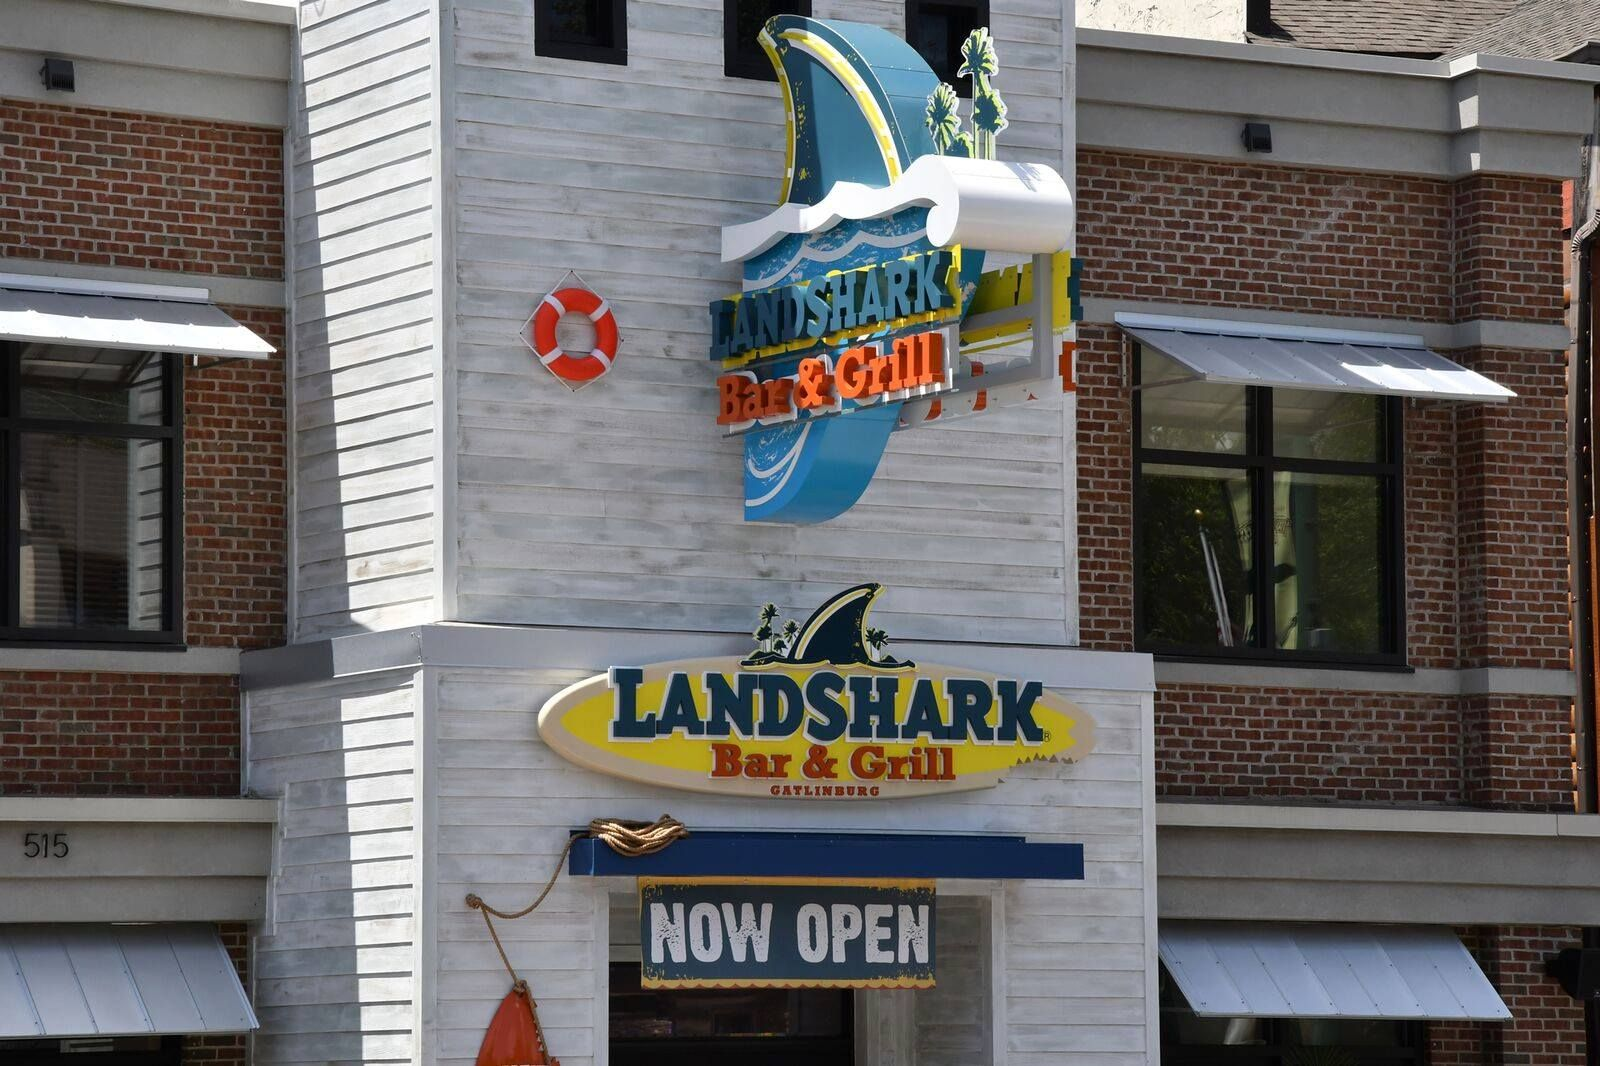 Landshark Bar And Grill In Gatlinburg Is A Family Friendly Restaurant Serving Great Food And Fun Gatlinburg Restaurants Gatlinburg Pigeon Forge Hotels